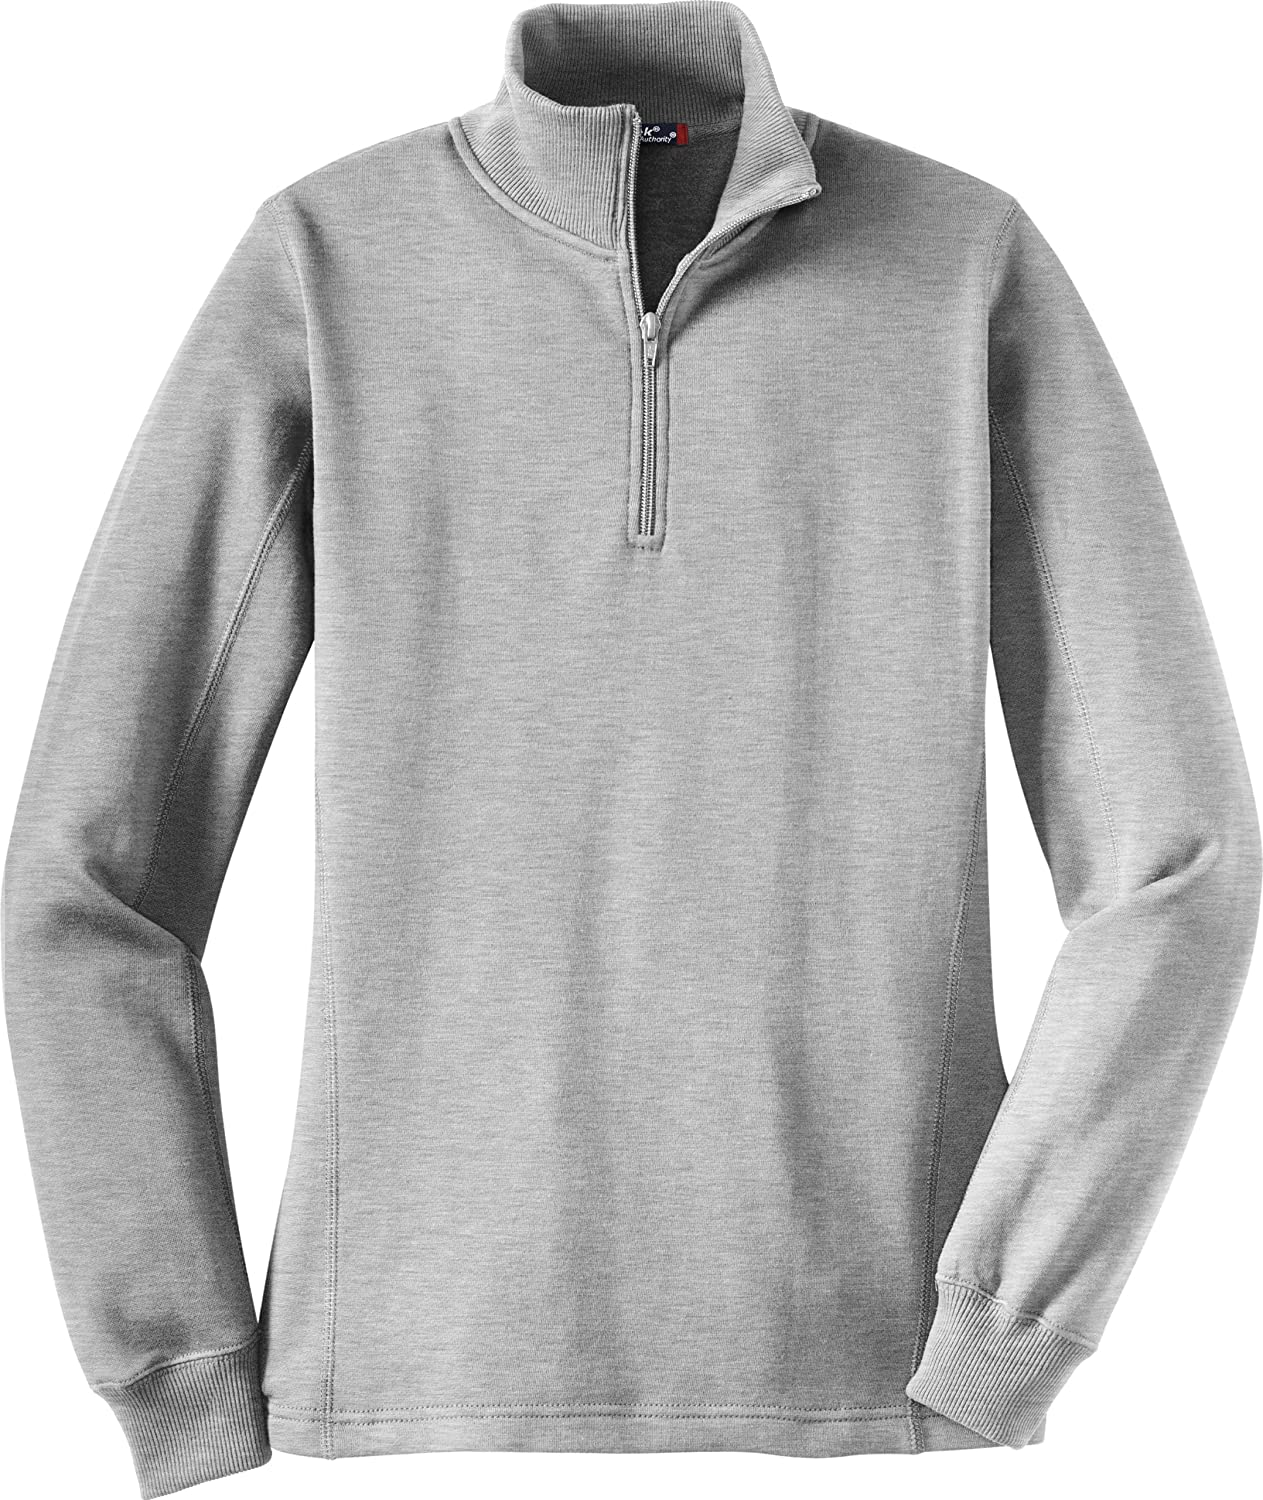 Amazon.com: White Sierra Women's Alpha Beta Quarter-Zip Fleece ...